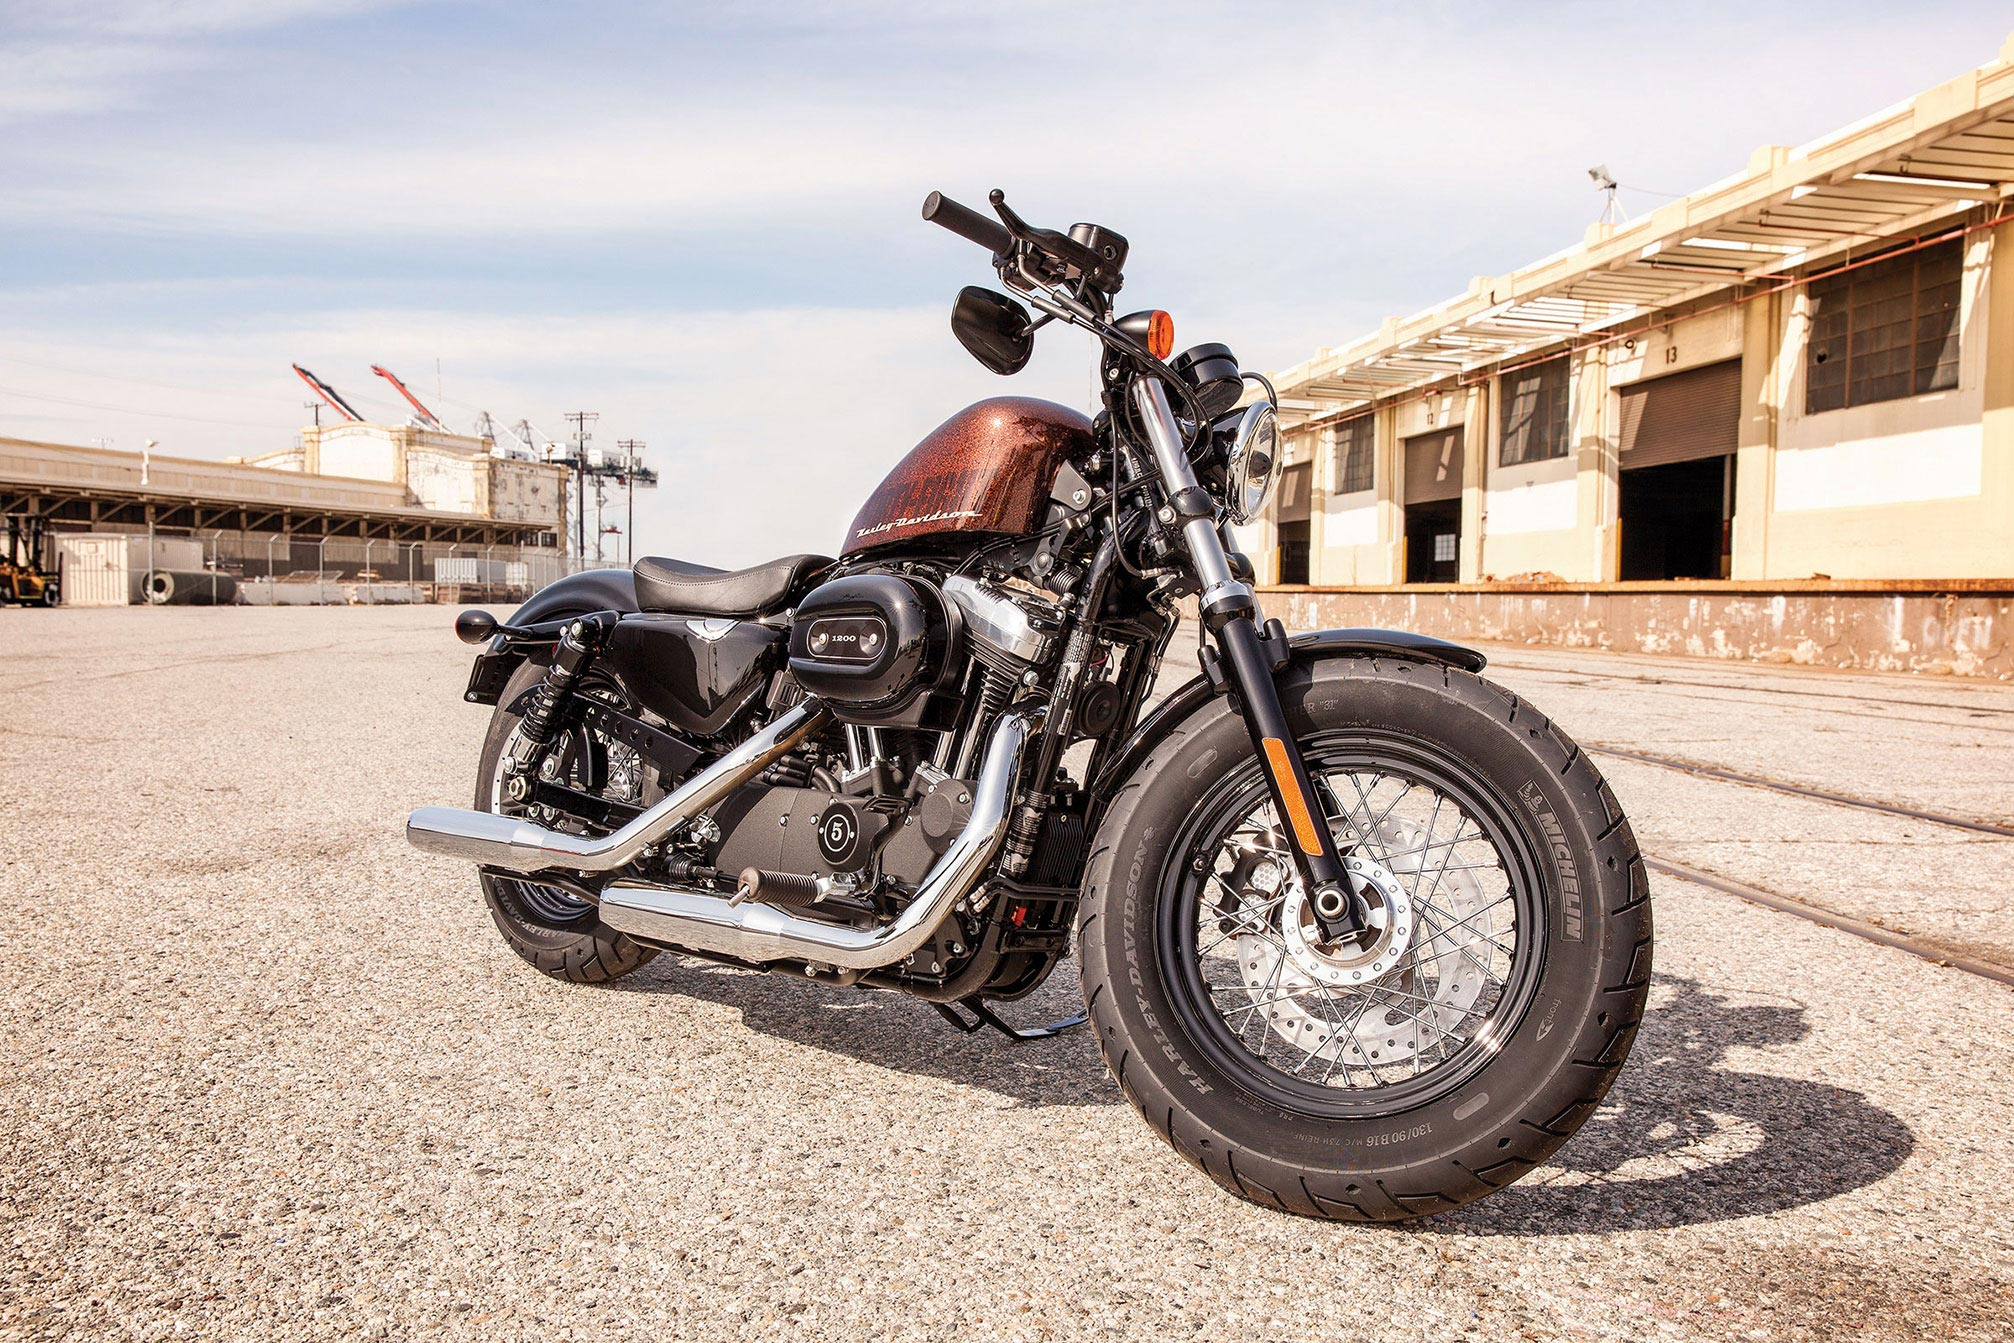 2014 Harley-Davidson XL1200X Forty-Eight Review